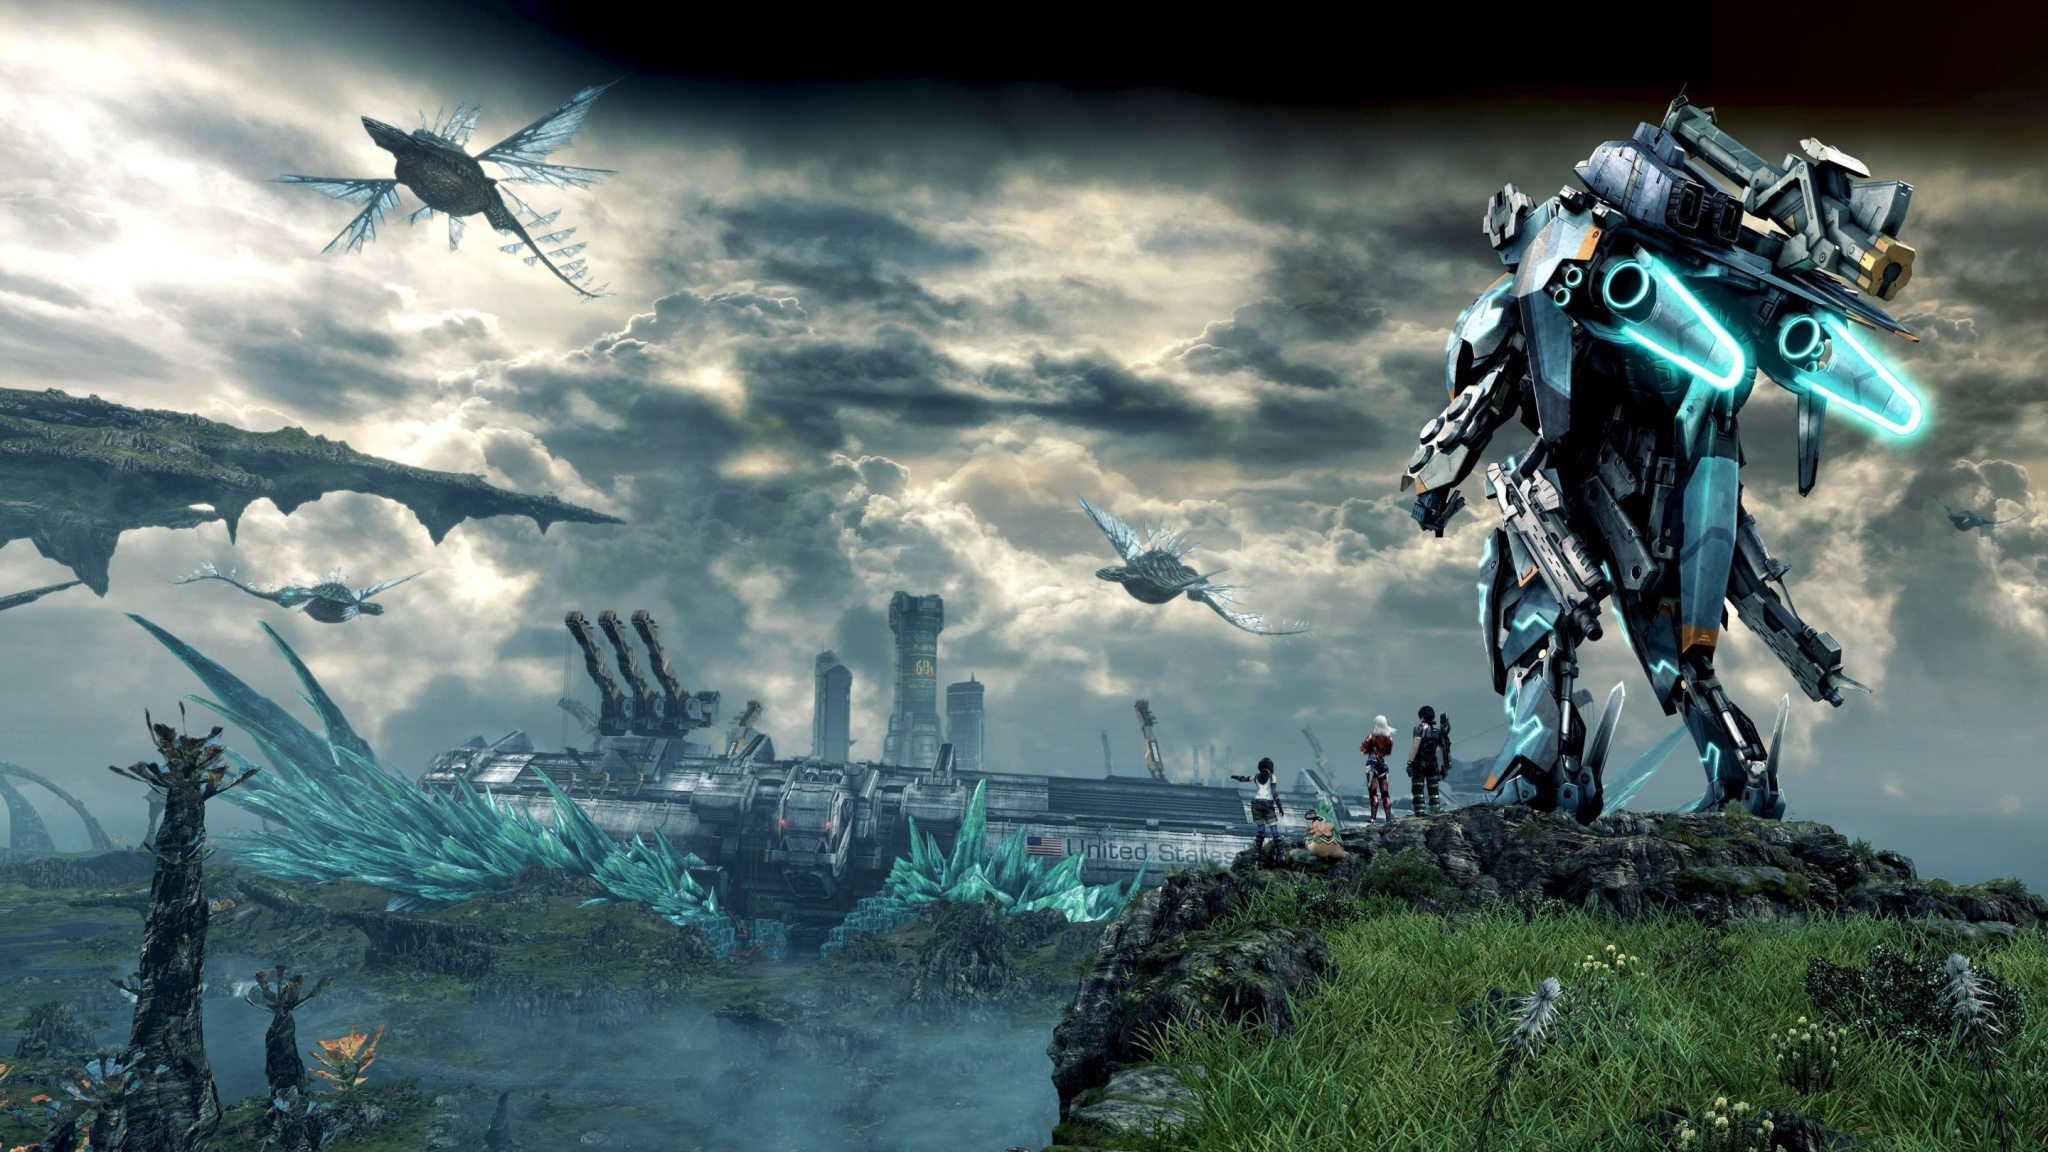 Xenoblade Chronicles X Game 2015 2048 x 1152 Download Close 2048x1152